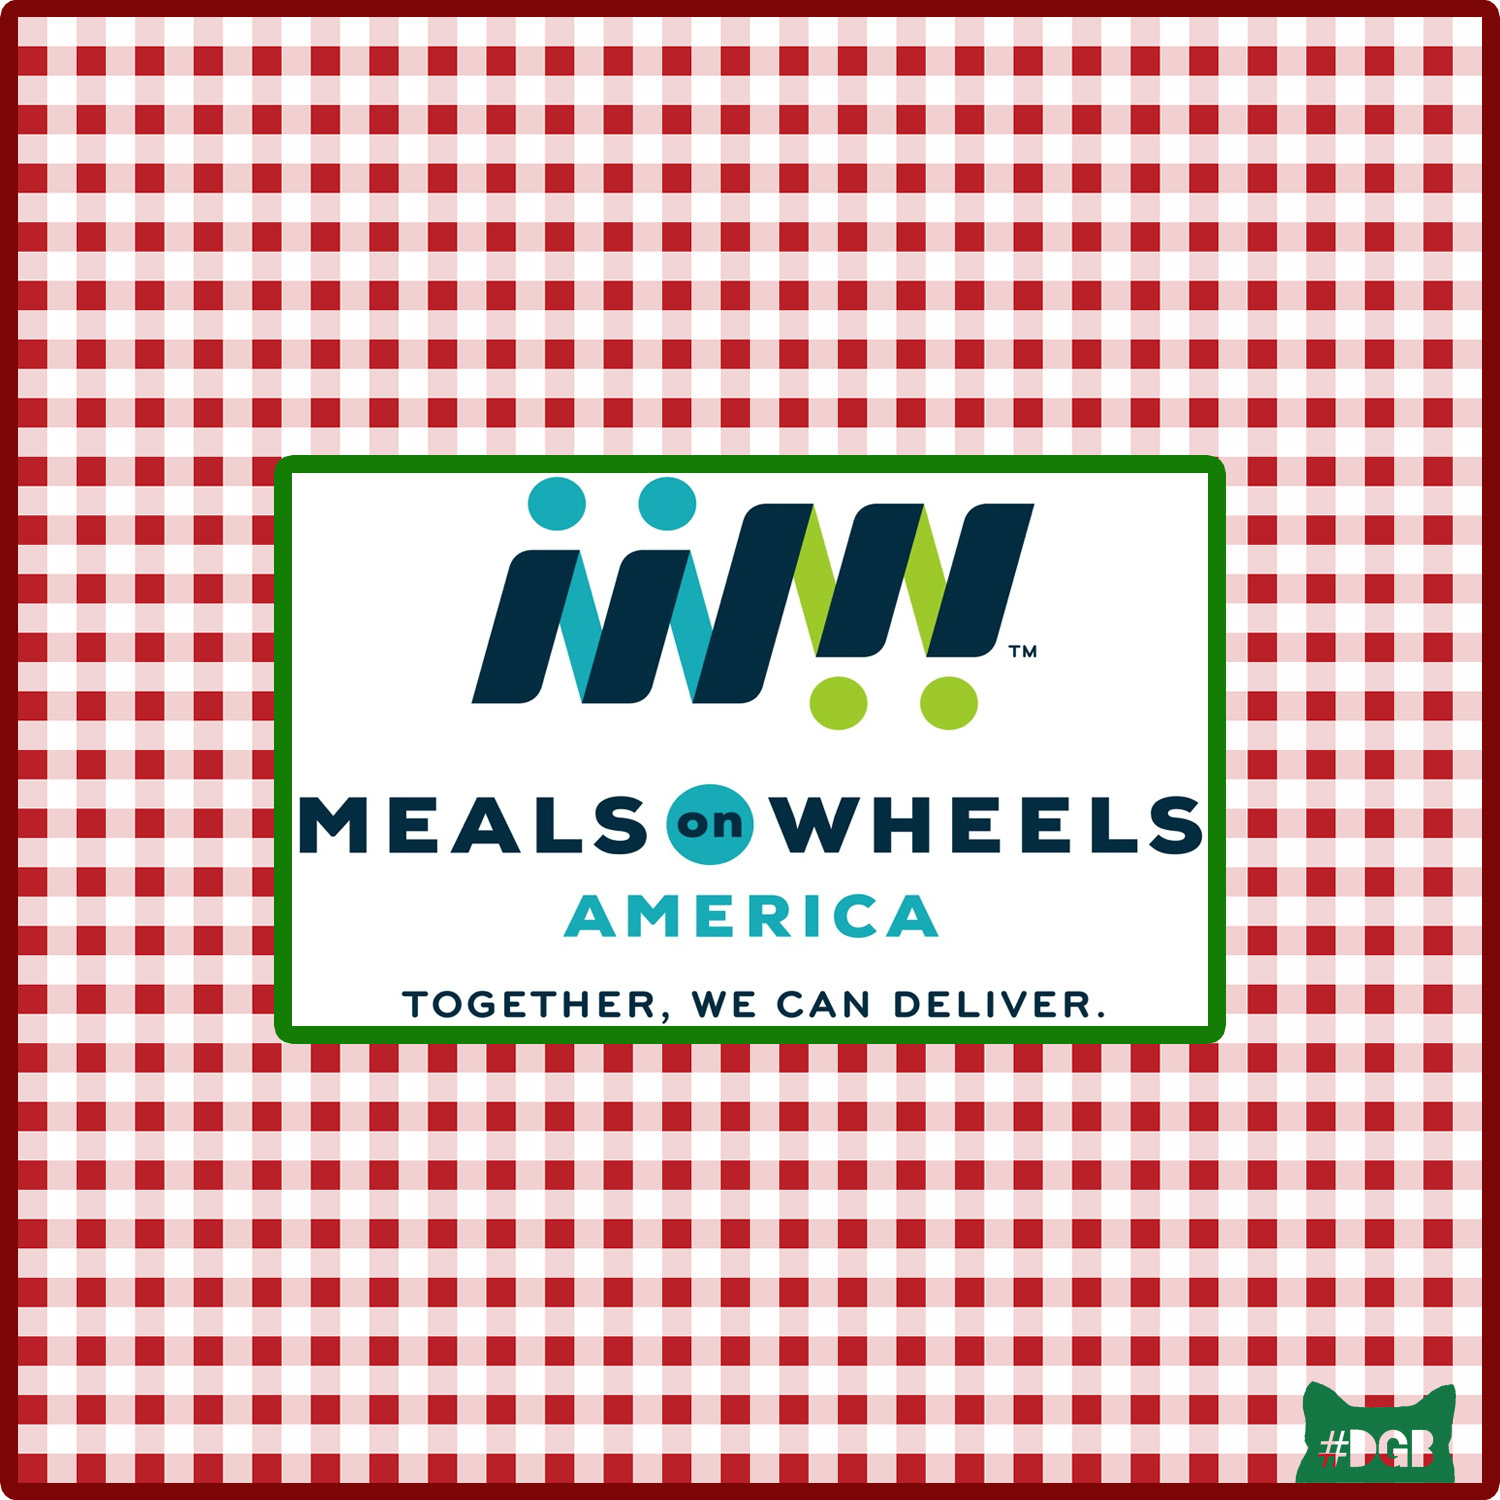 "Your DGB for today is to help feed senior Americans through the Meals on Wheels Program.     Recent comments by Trump's Budget Director, Mick Mulvaney, suggest that budget cuts have the potential to have adverse effects on the Meals on Wheels program. The President of Meals on Wheels has been quoted as saying  ""The problem with a skinny budget is it is lean on details. "" Our crystal ball is in the shop so we have no idea if they are going to lose funding or not (uncertainty is an underlying theme of this presidency), but we aren't ones to just sit around and wait for bad things to happen.     Today we are asking you to help Meals on Wheels in one of two ways. Consider volunteering for Meals on Wheels in a way that works for your schedule. It can be a one time thing, a once a month gig, or maybe you have time to do it every week! Some locations even need help in their kitchens preparing food. Check their  website  and find a volunteering opportunity that works for you. If you are hard-pressed for time, you can visit  their site  for other ideas for advocacy, shopping, or donations.     Let's work together to make sure our seniors are fed and our hearts are full."